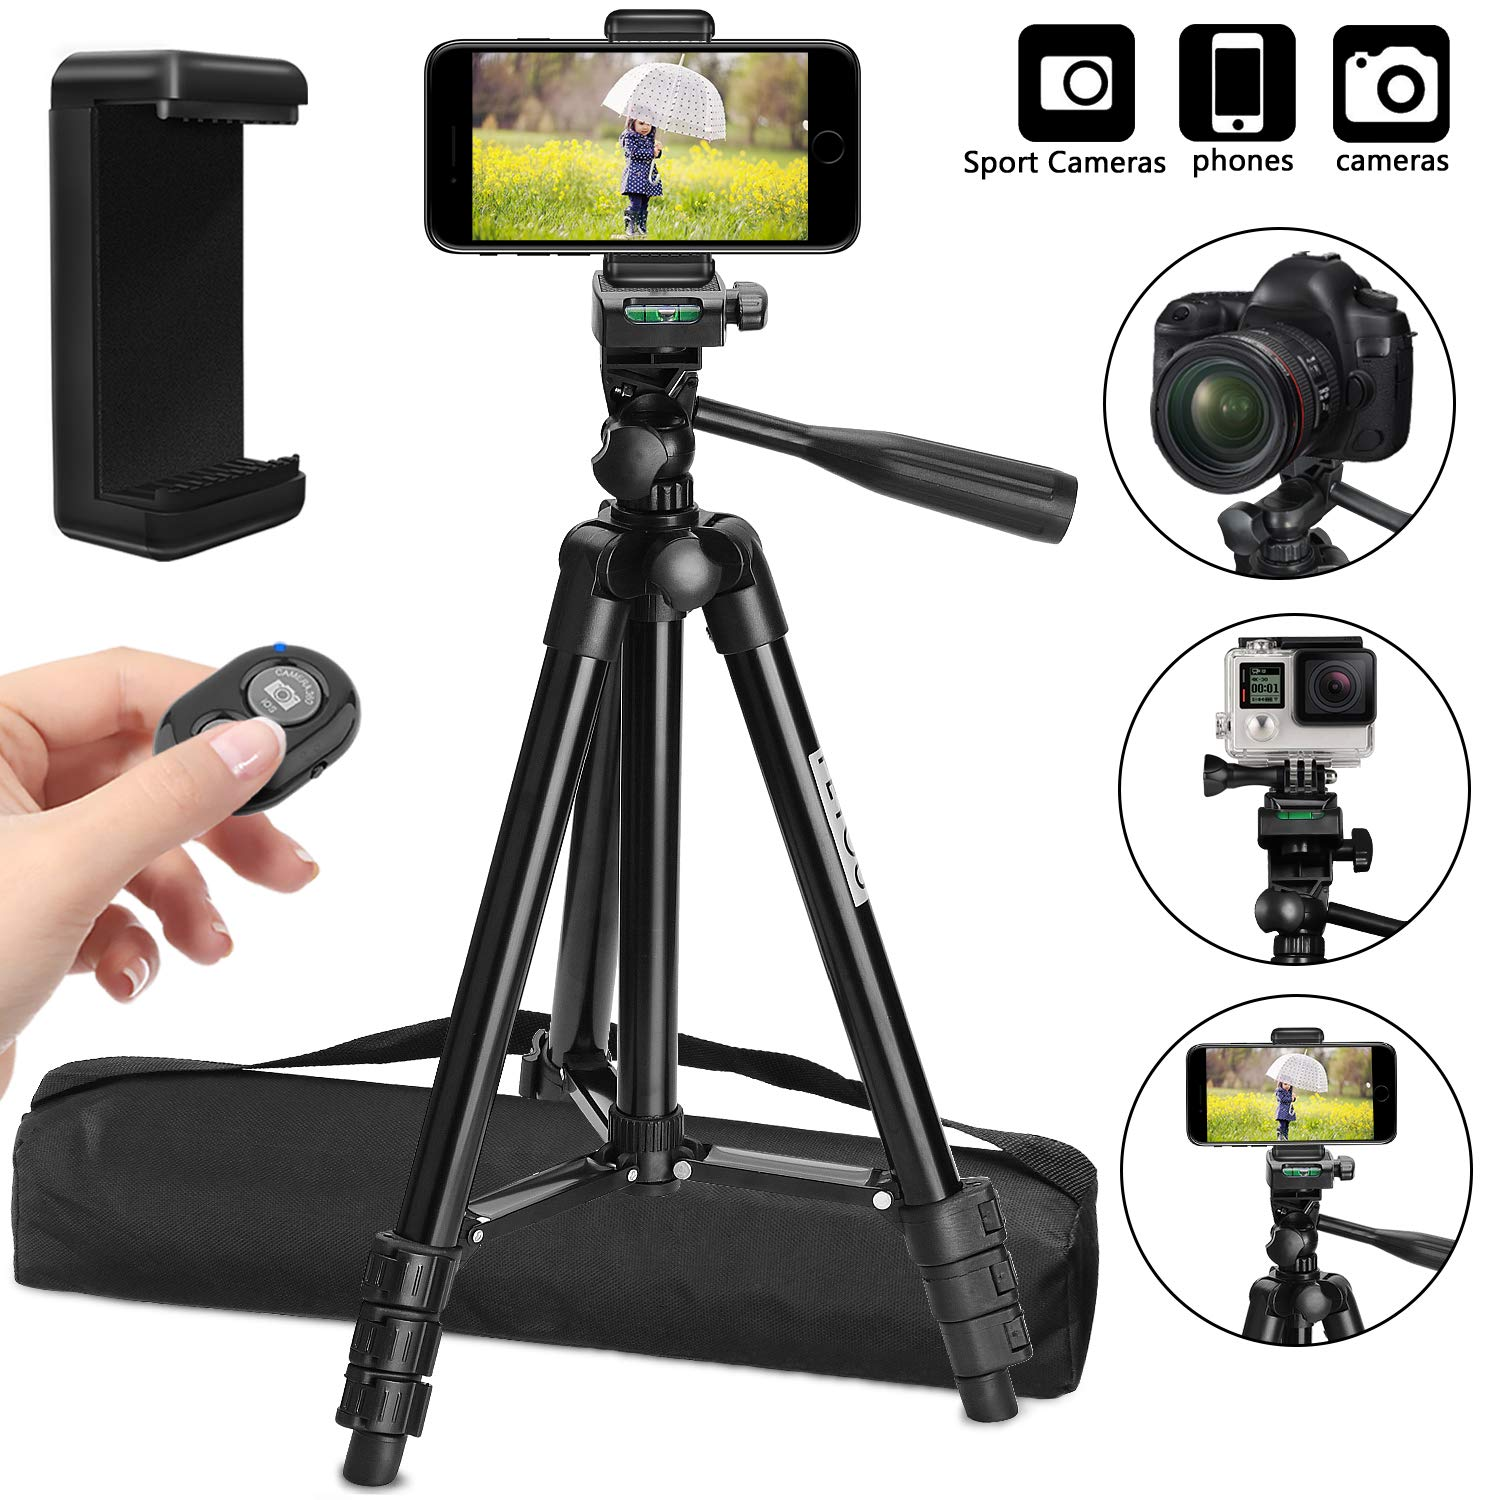 Tripod for iPhone X, PEYOU 42'' Aluminum Camera Tripod + Wireless Remote Shutter + Universal Smartphone Holder Mount Compatible for iPhone Xs MaxXR X 8 Plus 7 6 6S Plus, Galaxy Note 9 8 S10 S9 S8 Plus by Peyou